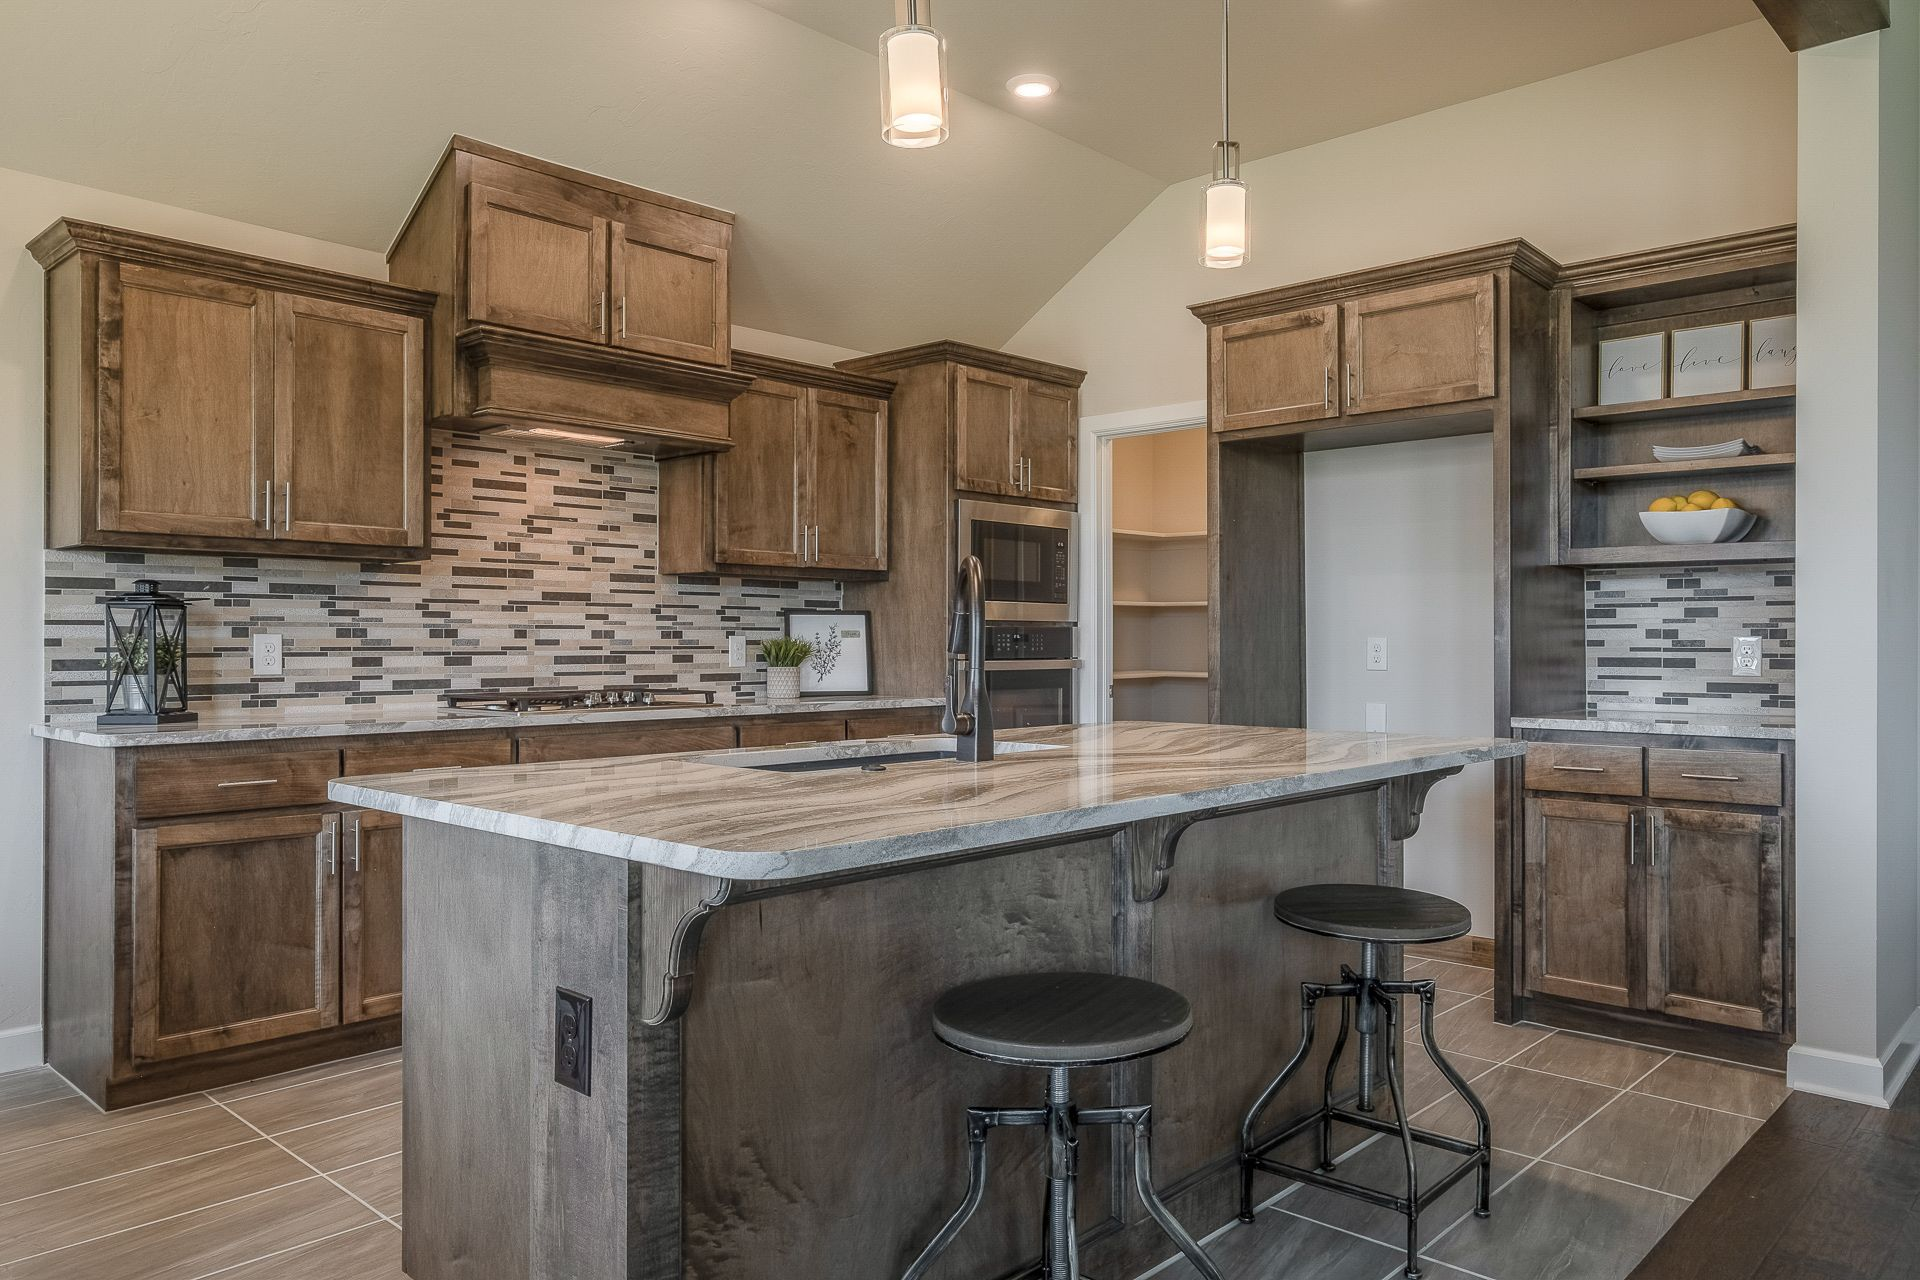 Kitchen featured in the Isabella By Ideal Homes in Oklahoma City, OK